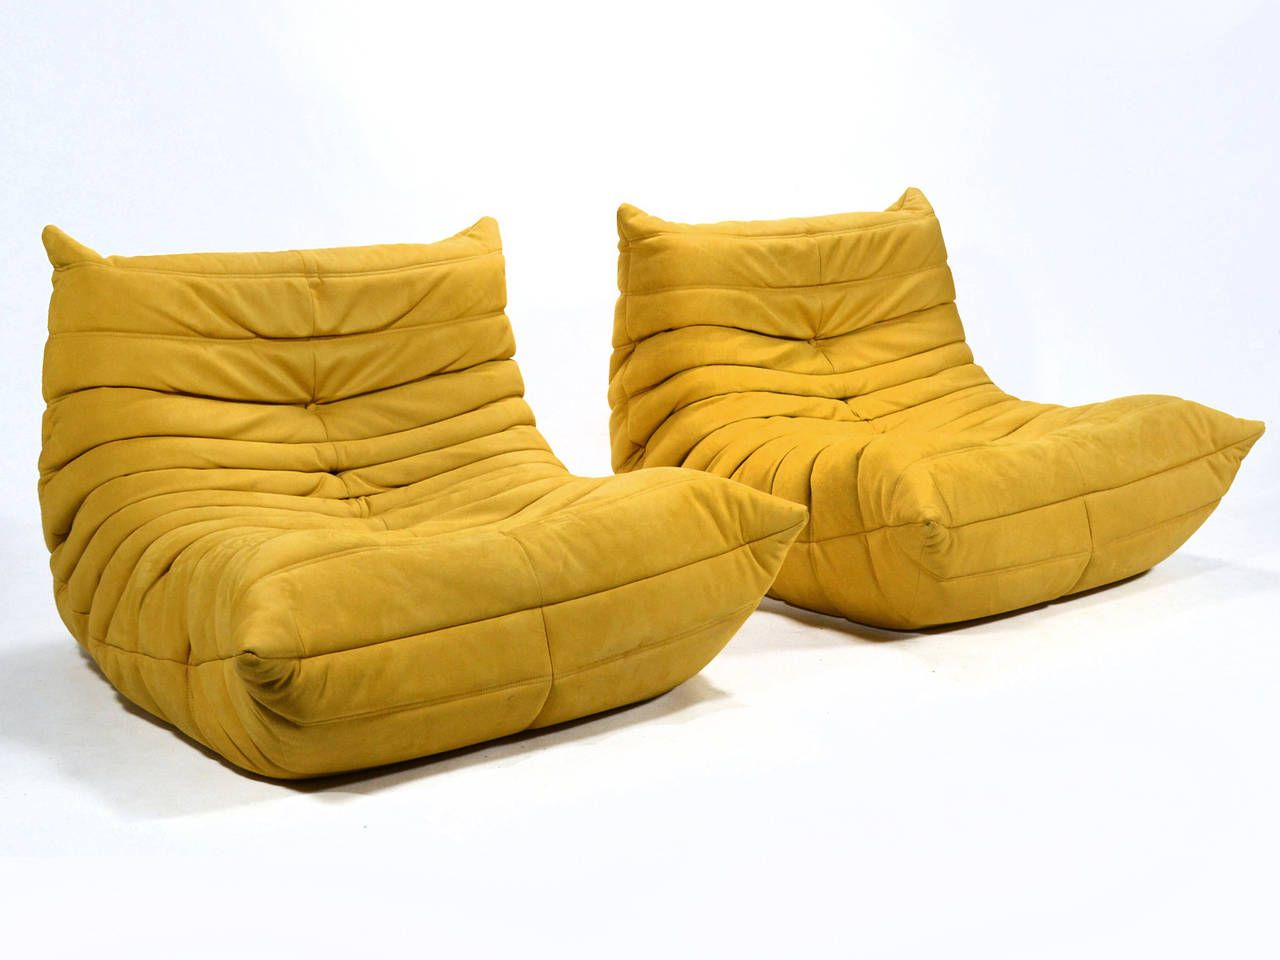 Pair Of Michel Ducaroy Togo Lounge Chairs By Ligne Roset - Ligne Roset Fauteuils